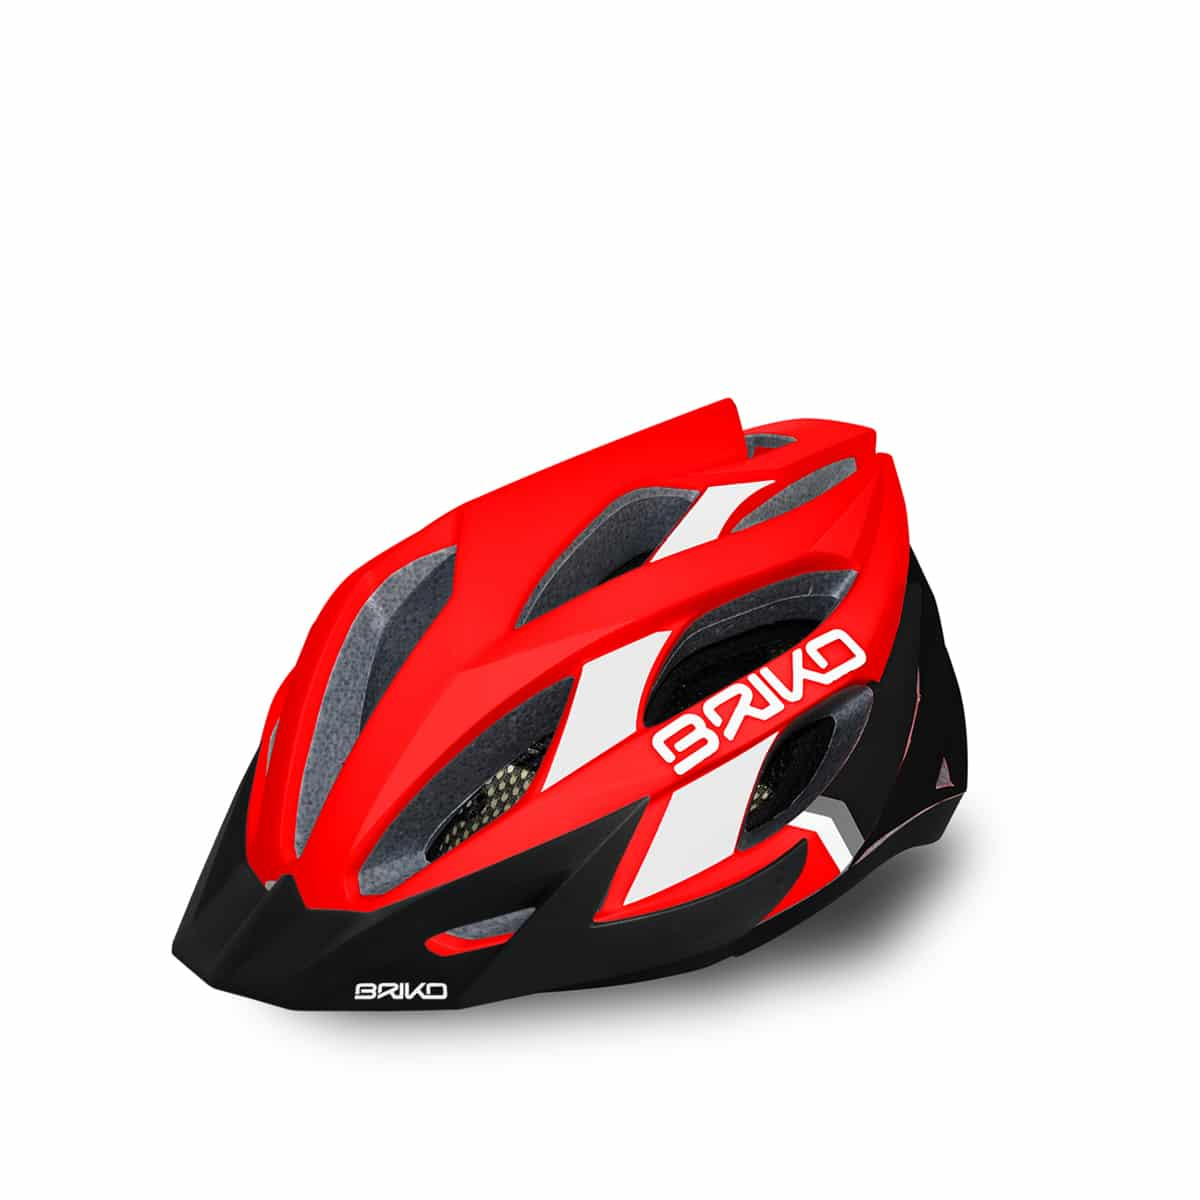 Fuoco - White/Red/Black 1